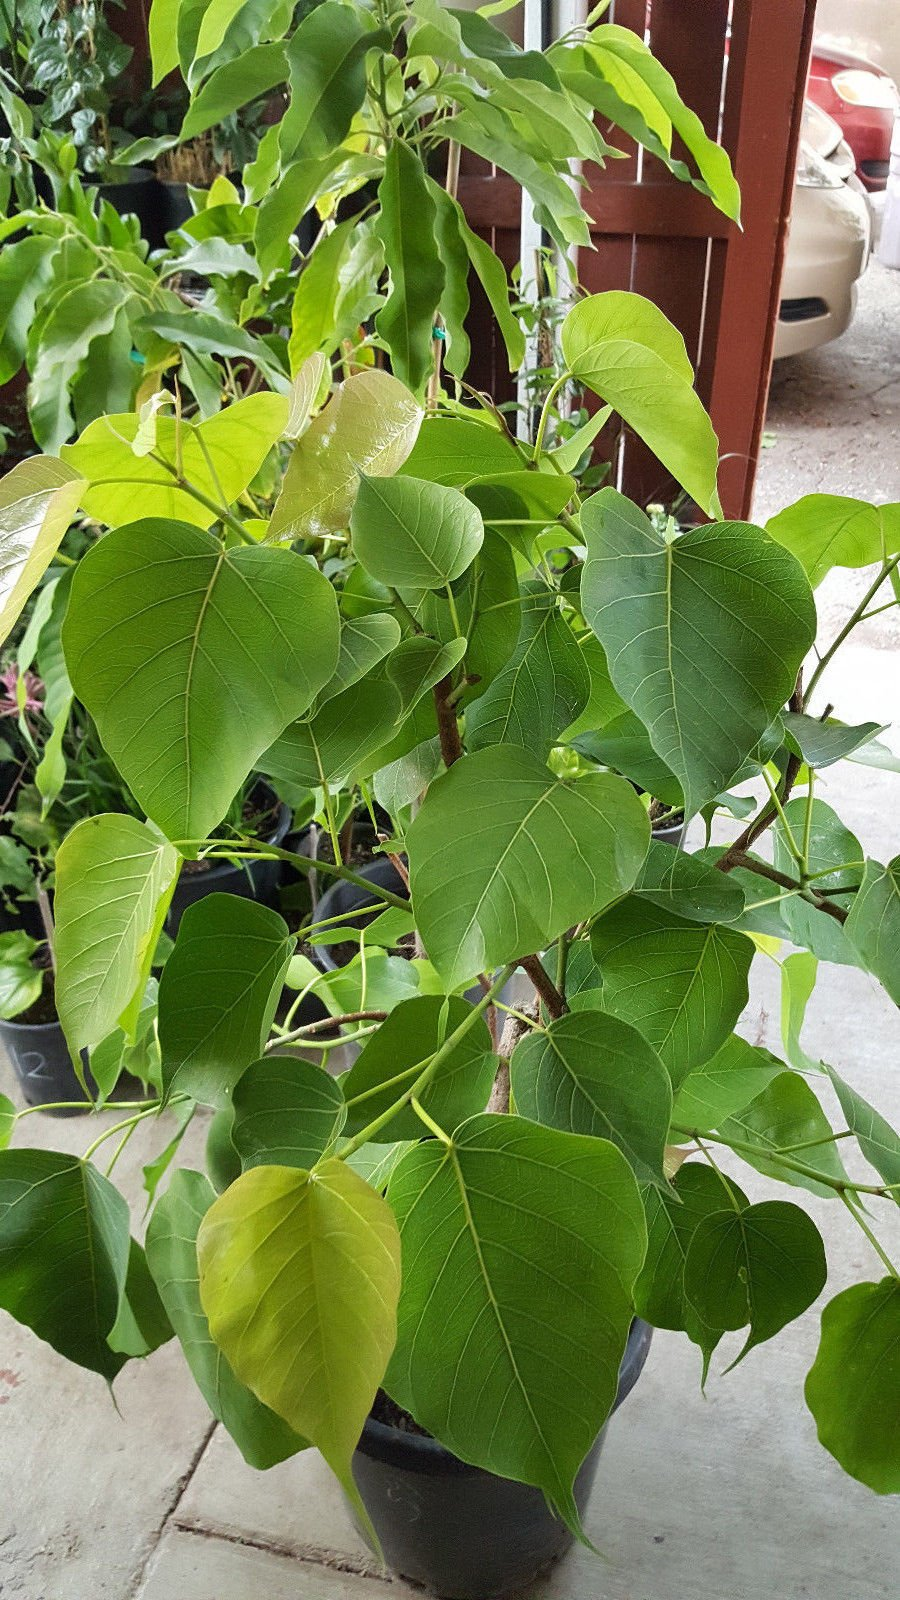 9EzTropical - Bodhi Plant FICUS RELIGIOSA - Sacred Fig Tree - 3 to 4 Feet Tall - Ship in 3 Gal Pot - Very Big Trunk